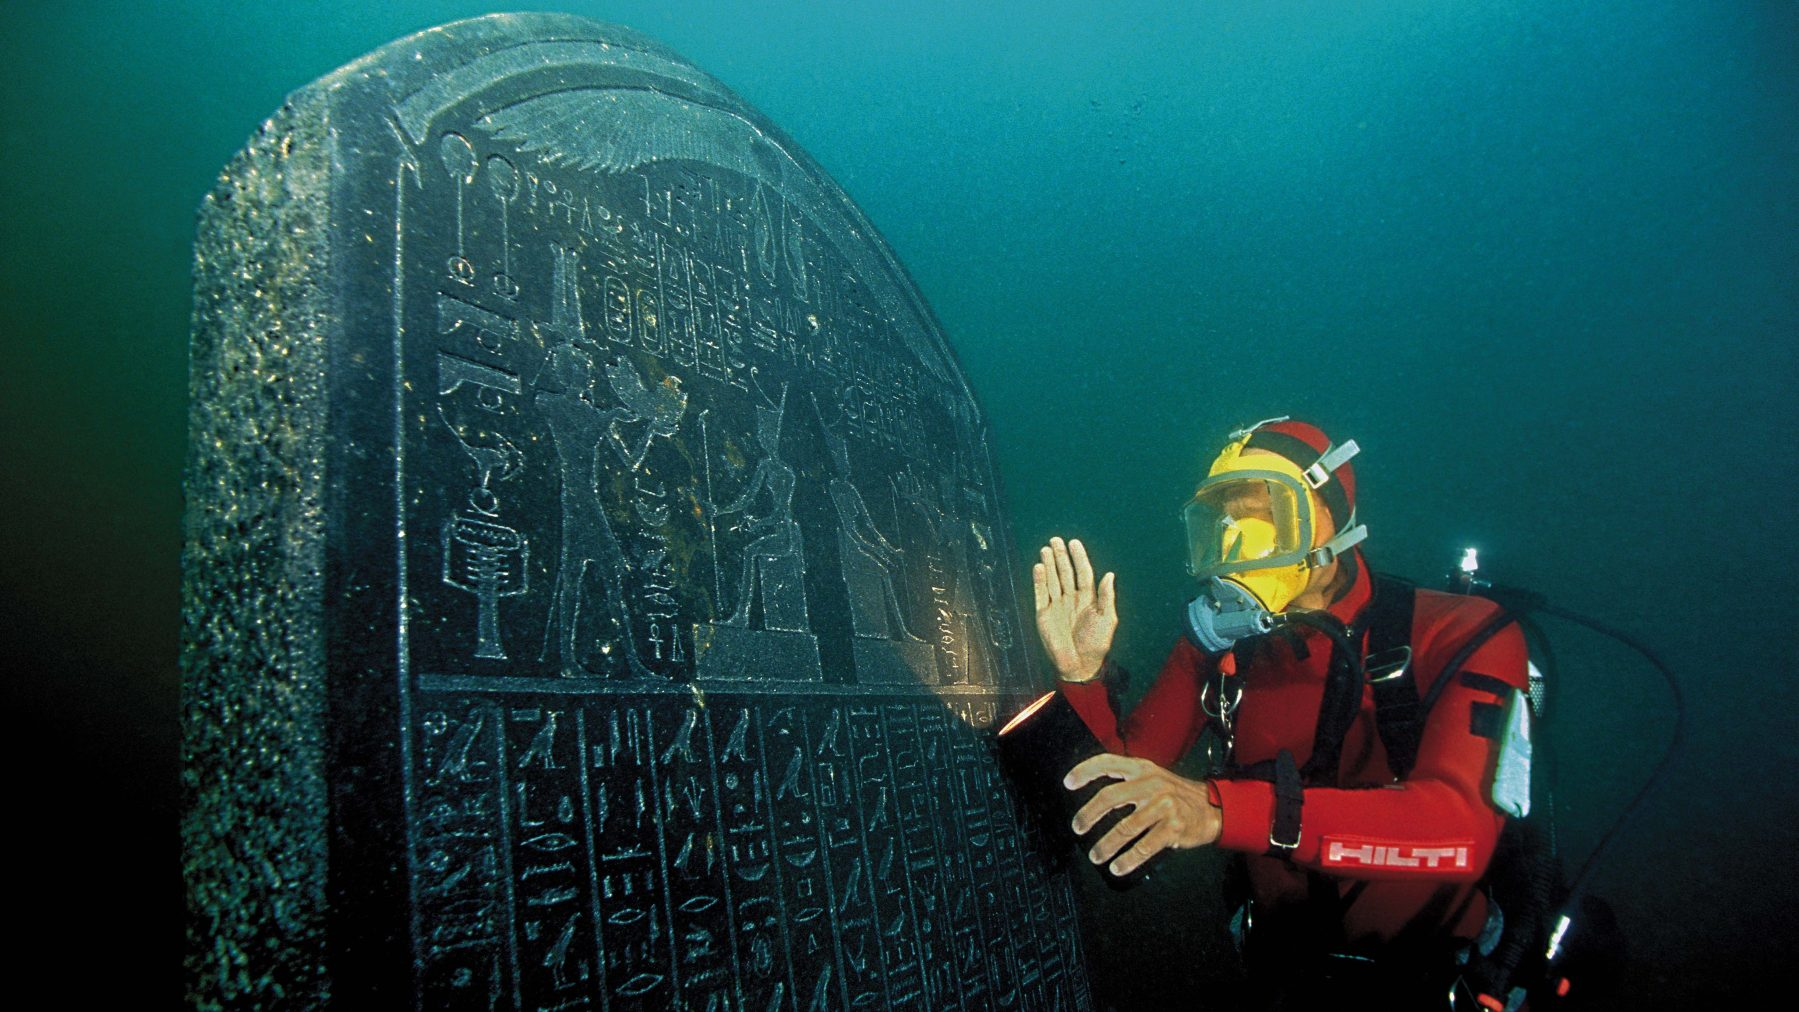 The intact stele (1.90 m) is inscribed with the decree of Saϊs and was discovered on the site of Thonis-Heracleion. It was commissioned by Nectanebos I (378-362 BC) and is almost identical to the Stele of Naukratis in the Egyptian Mu seum in Cairo. The place where it was to be situated is clearly named: Thonis-Heracleion. (Franck Goddio / Hilti Foundation)